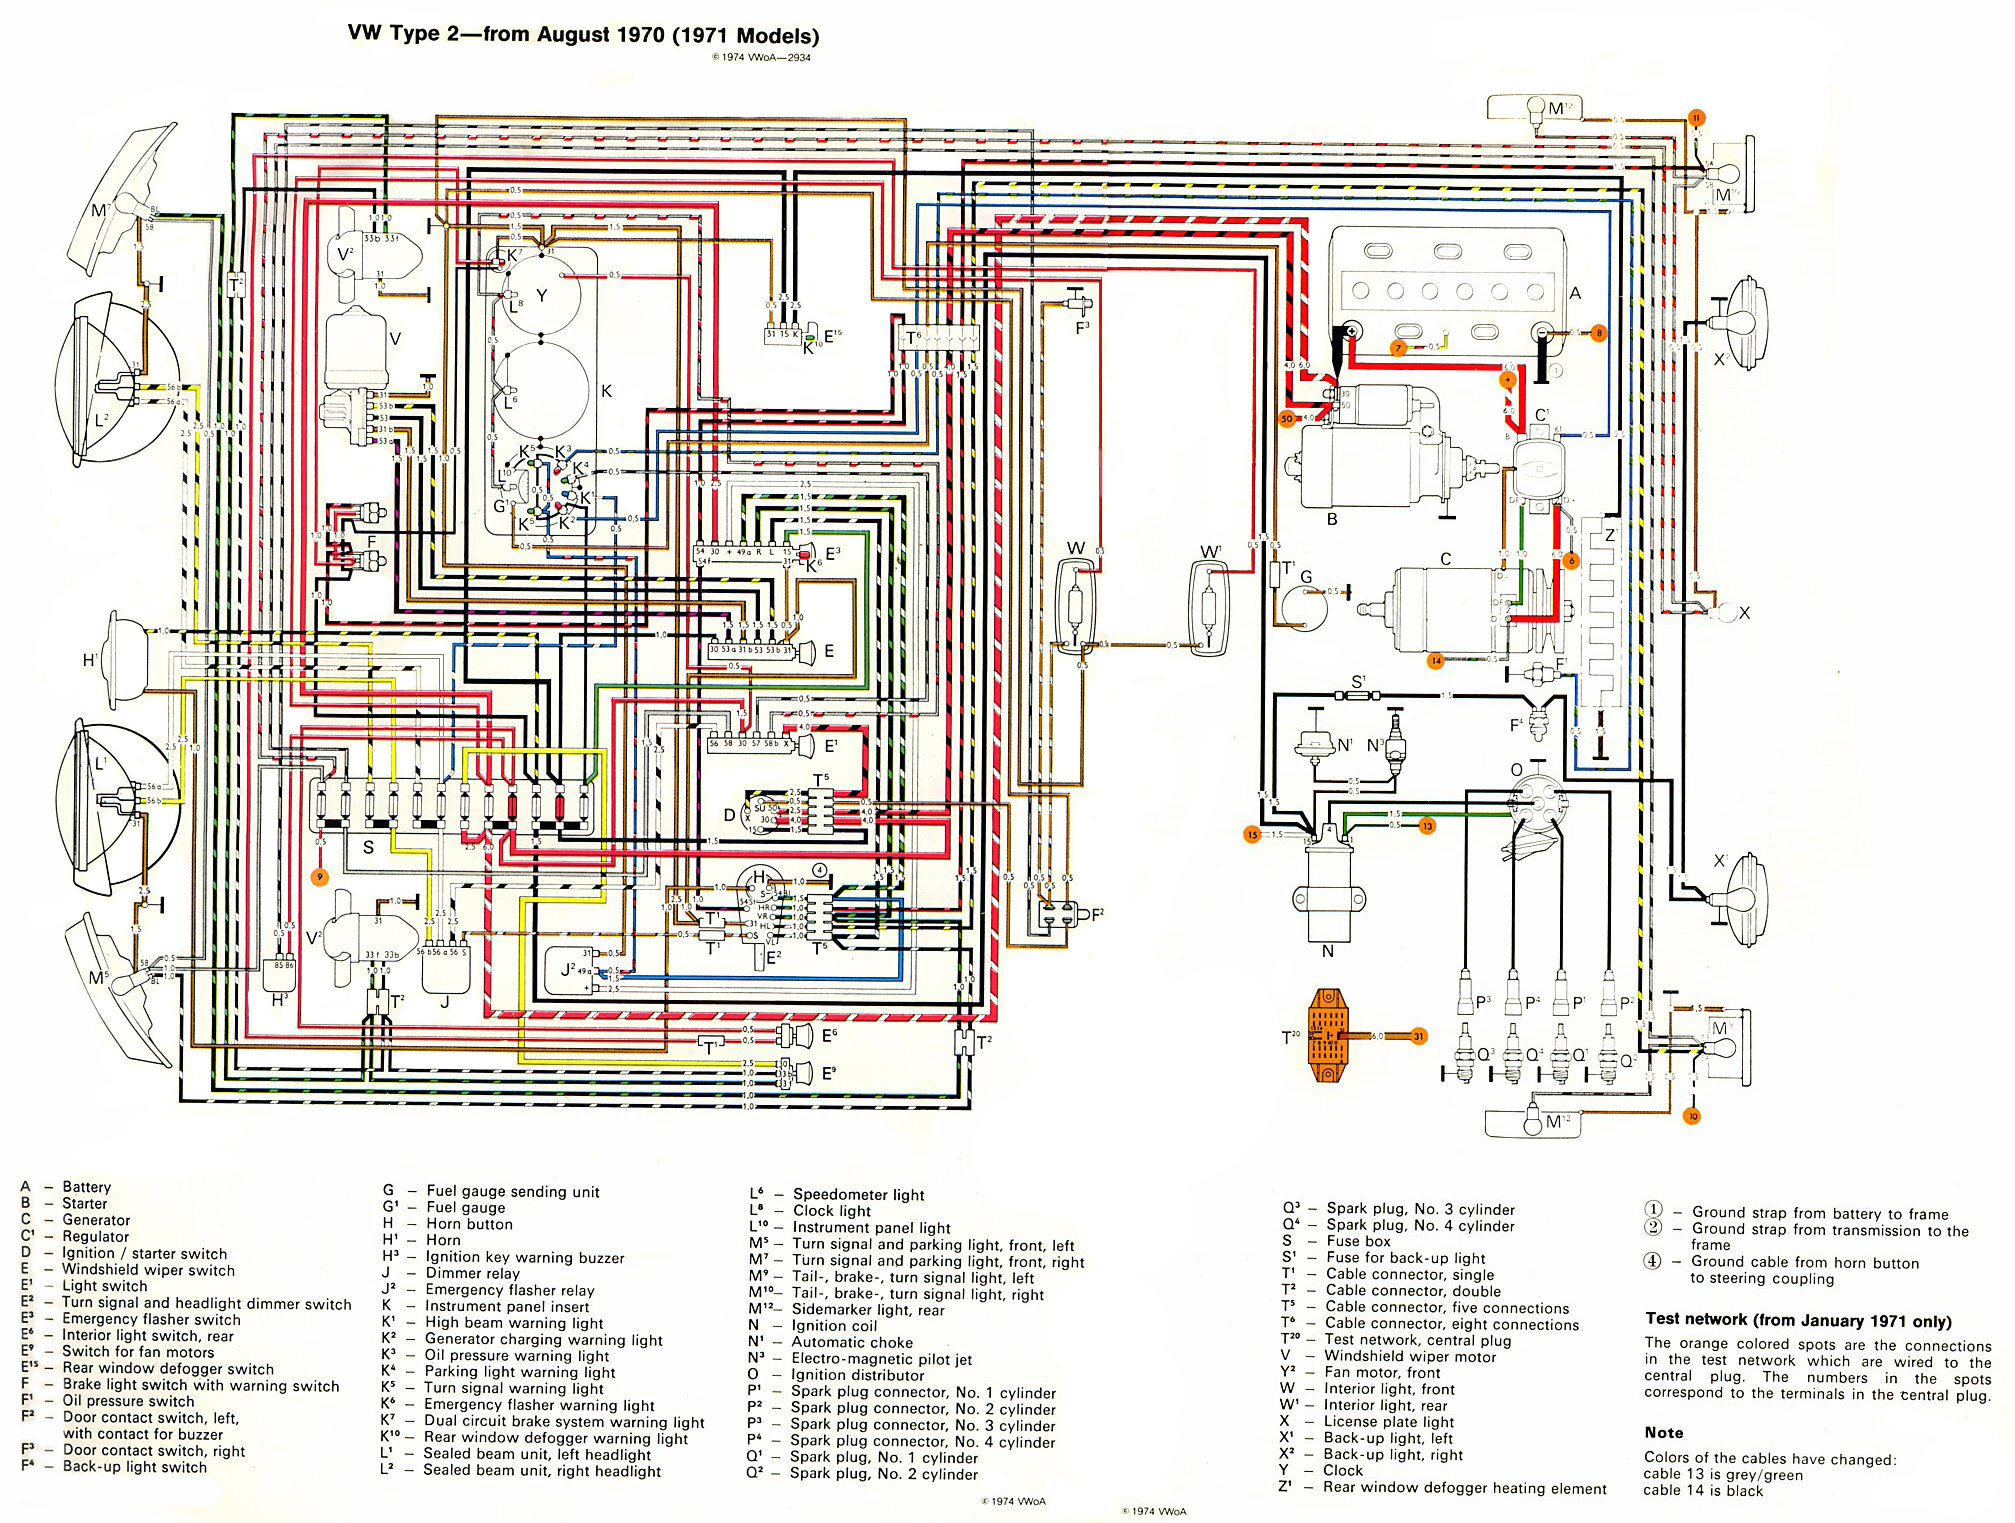 vw bus wiring diagrams 71 vw wiring diagram wirdig ford f 150 4 6 engine diagram furthermore vw bus wiring